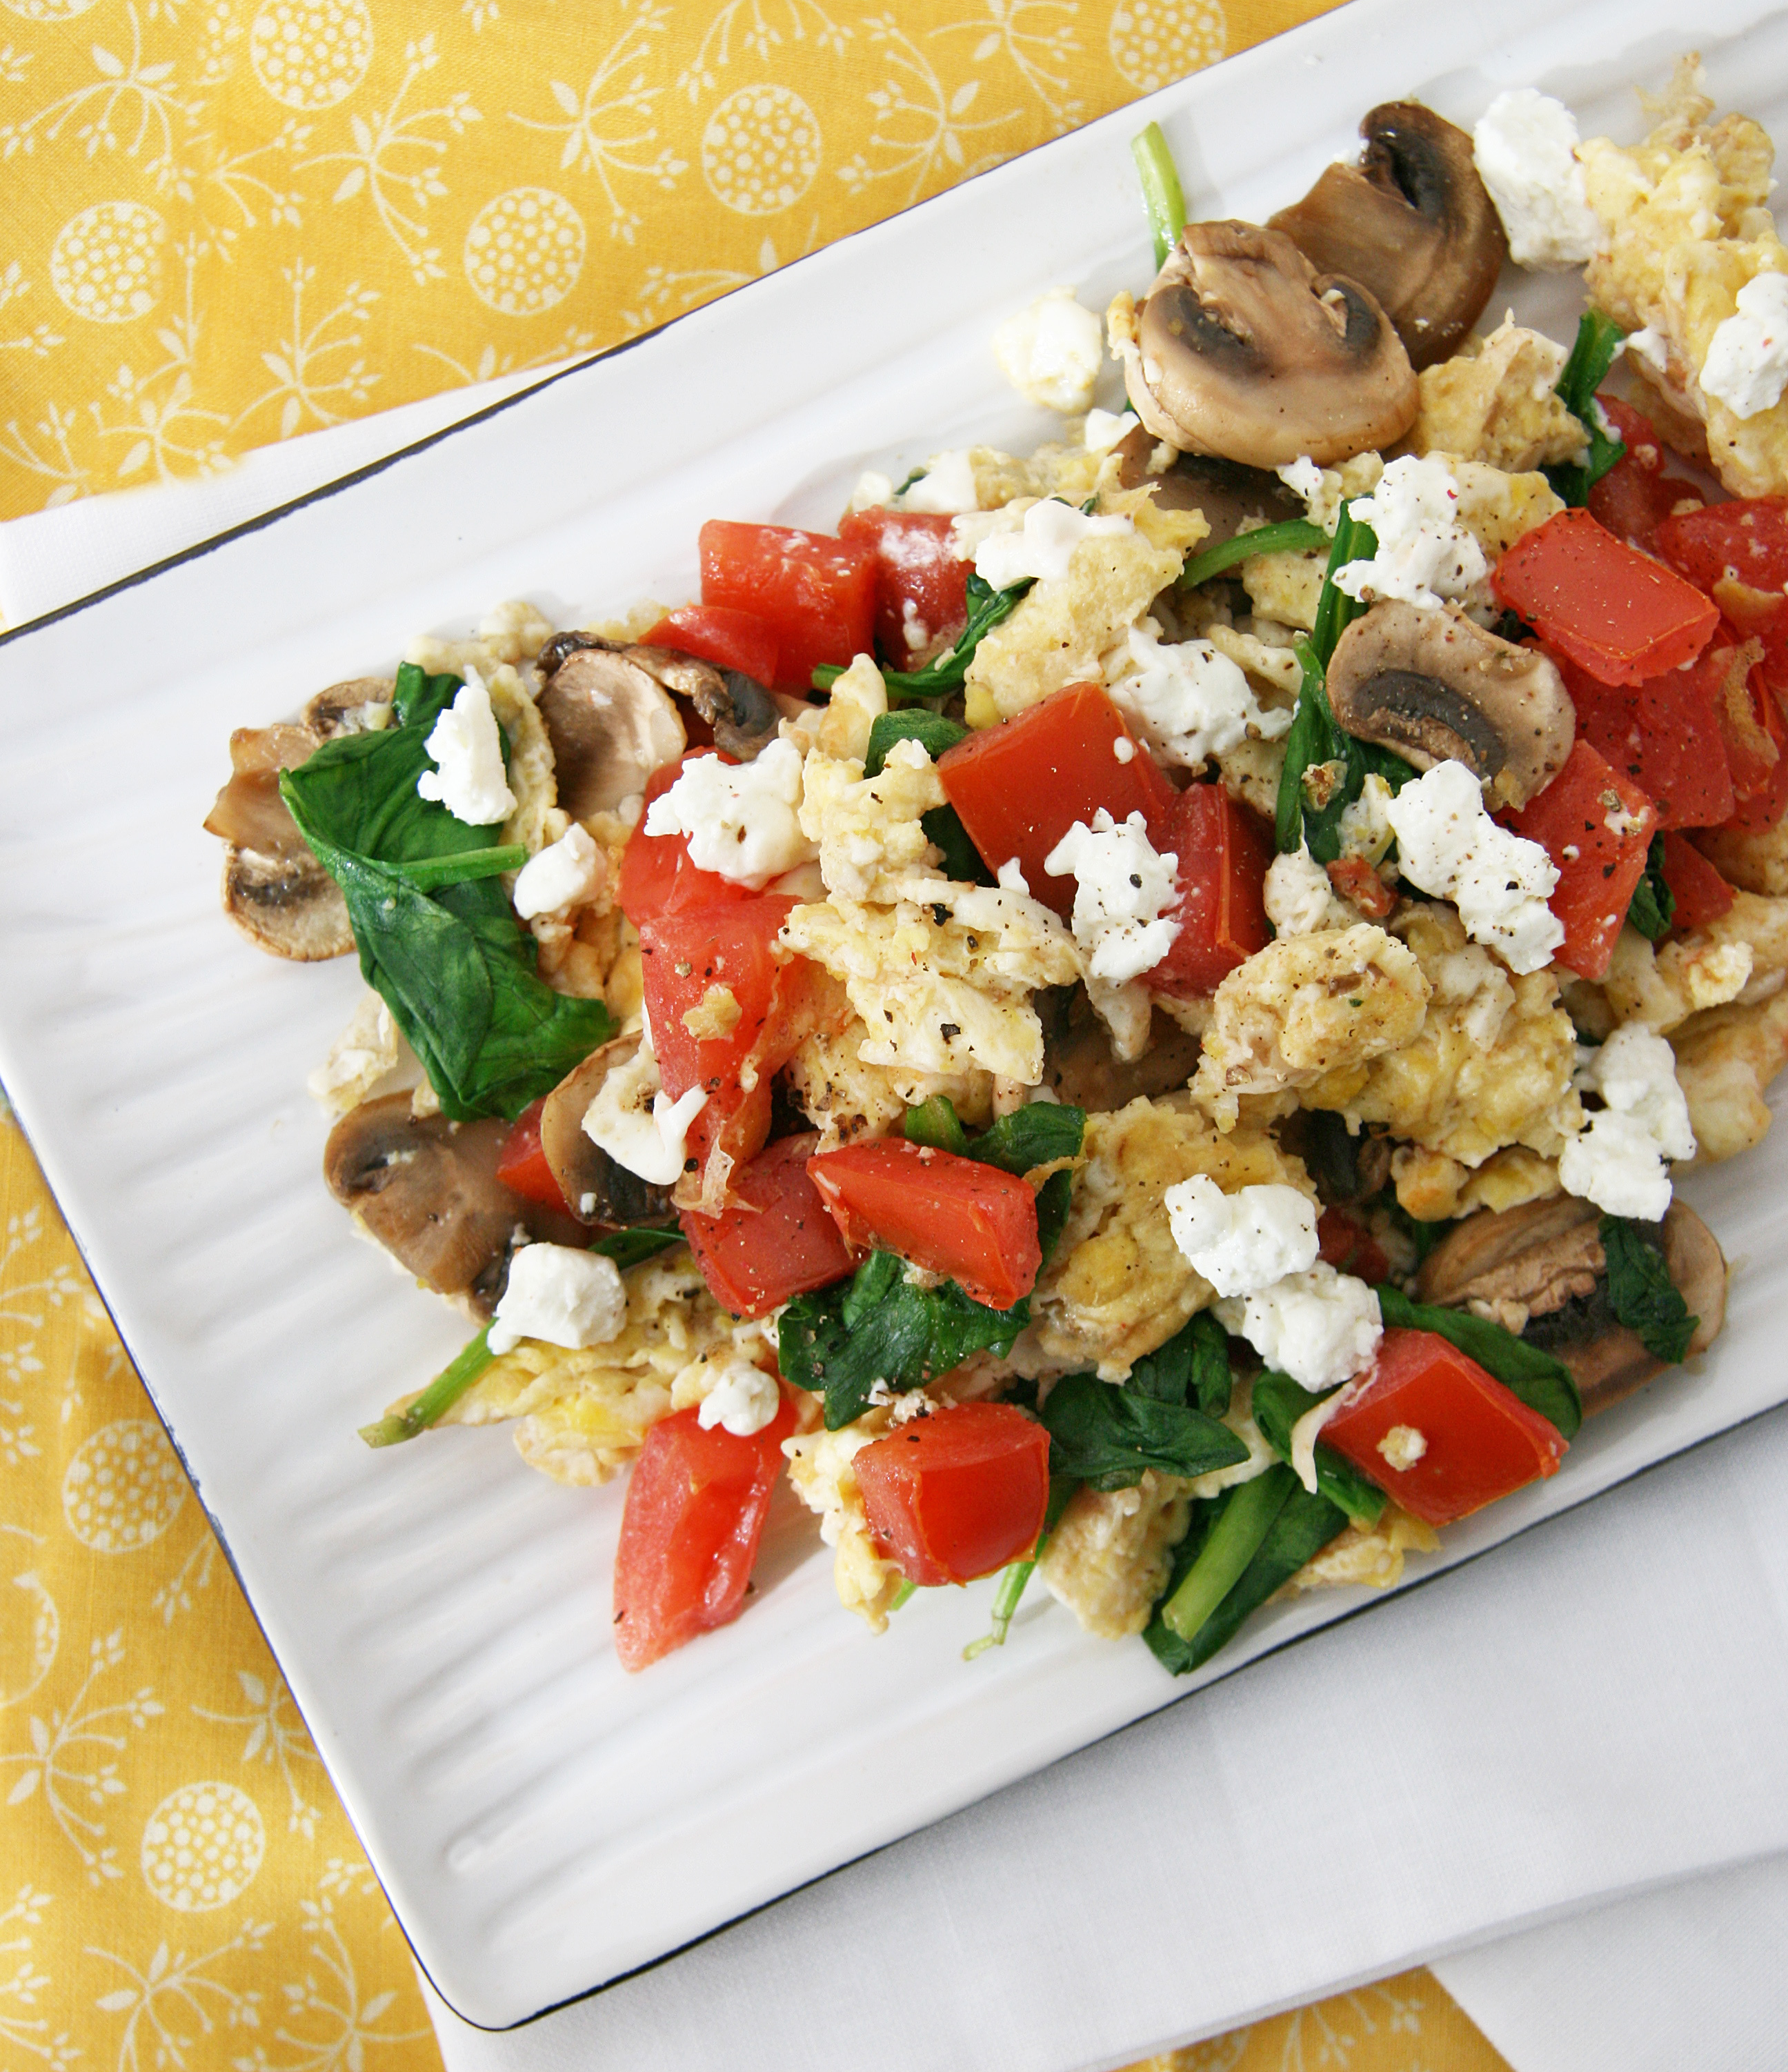 Ham And Avocado Scramble Recipe: Scrambled Eggs With Veggies And Cheese